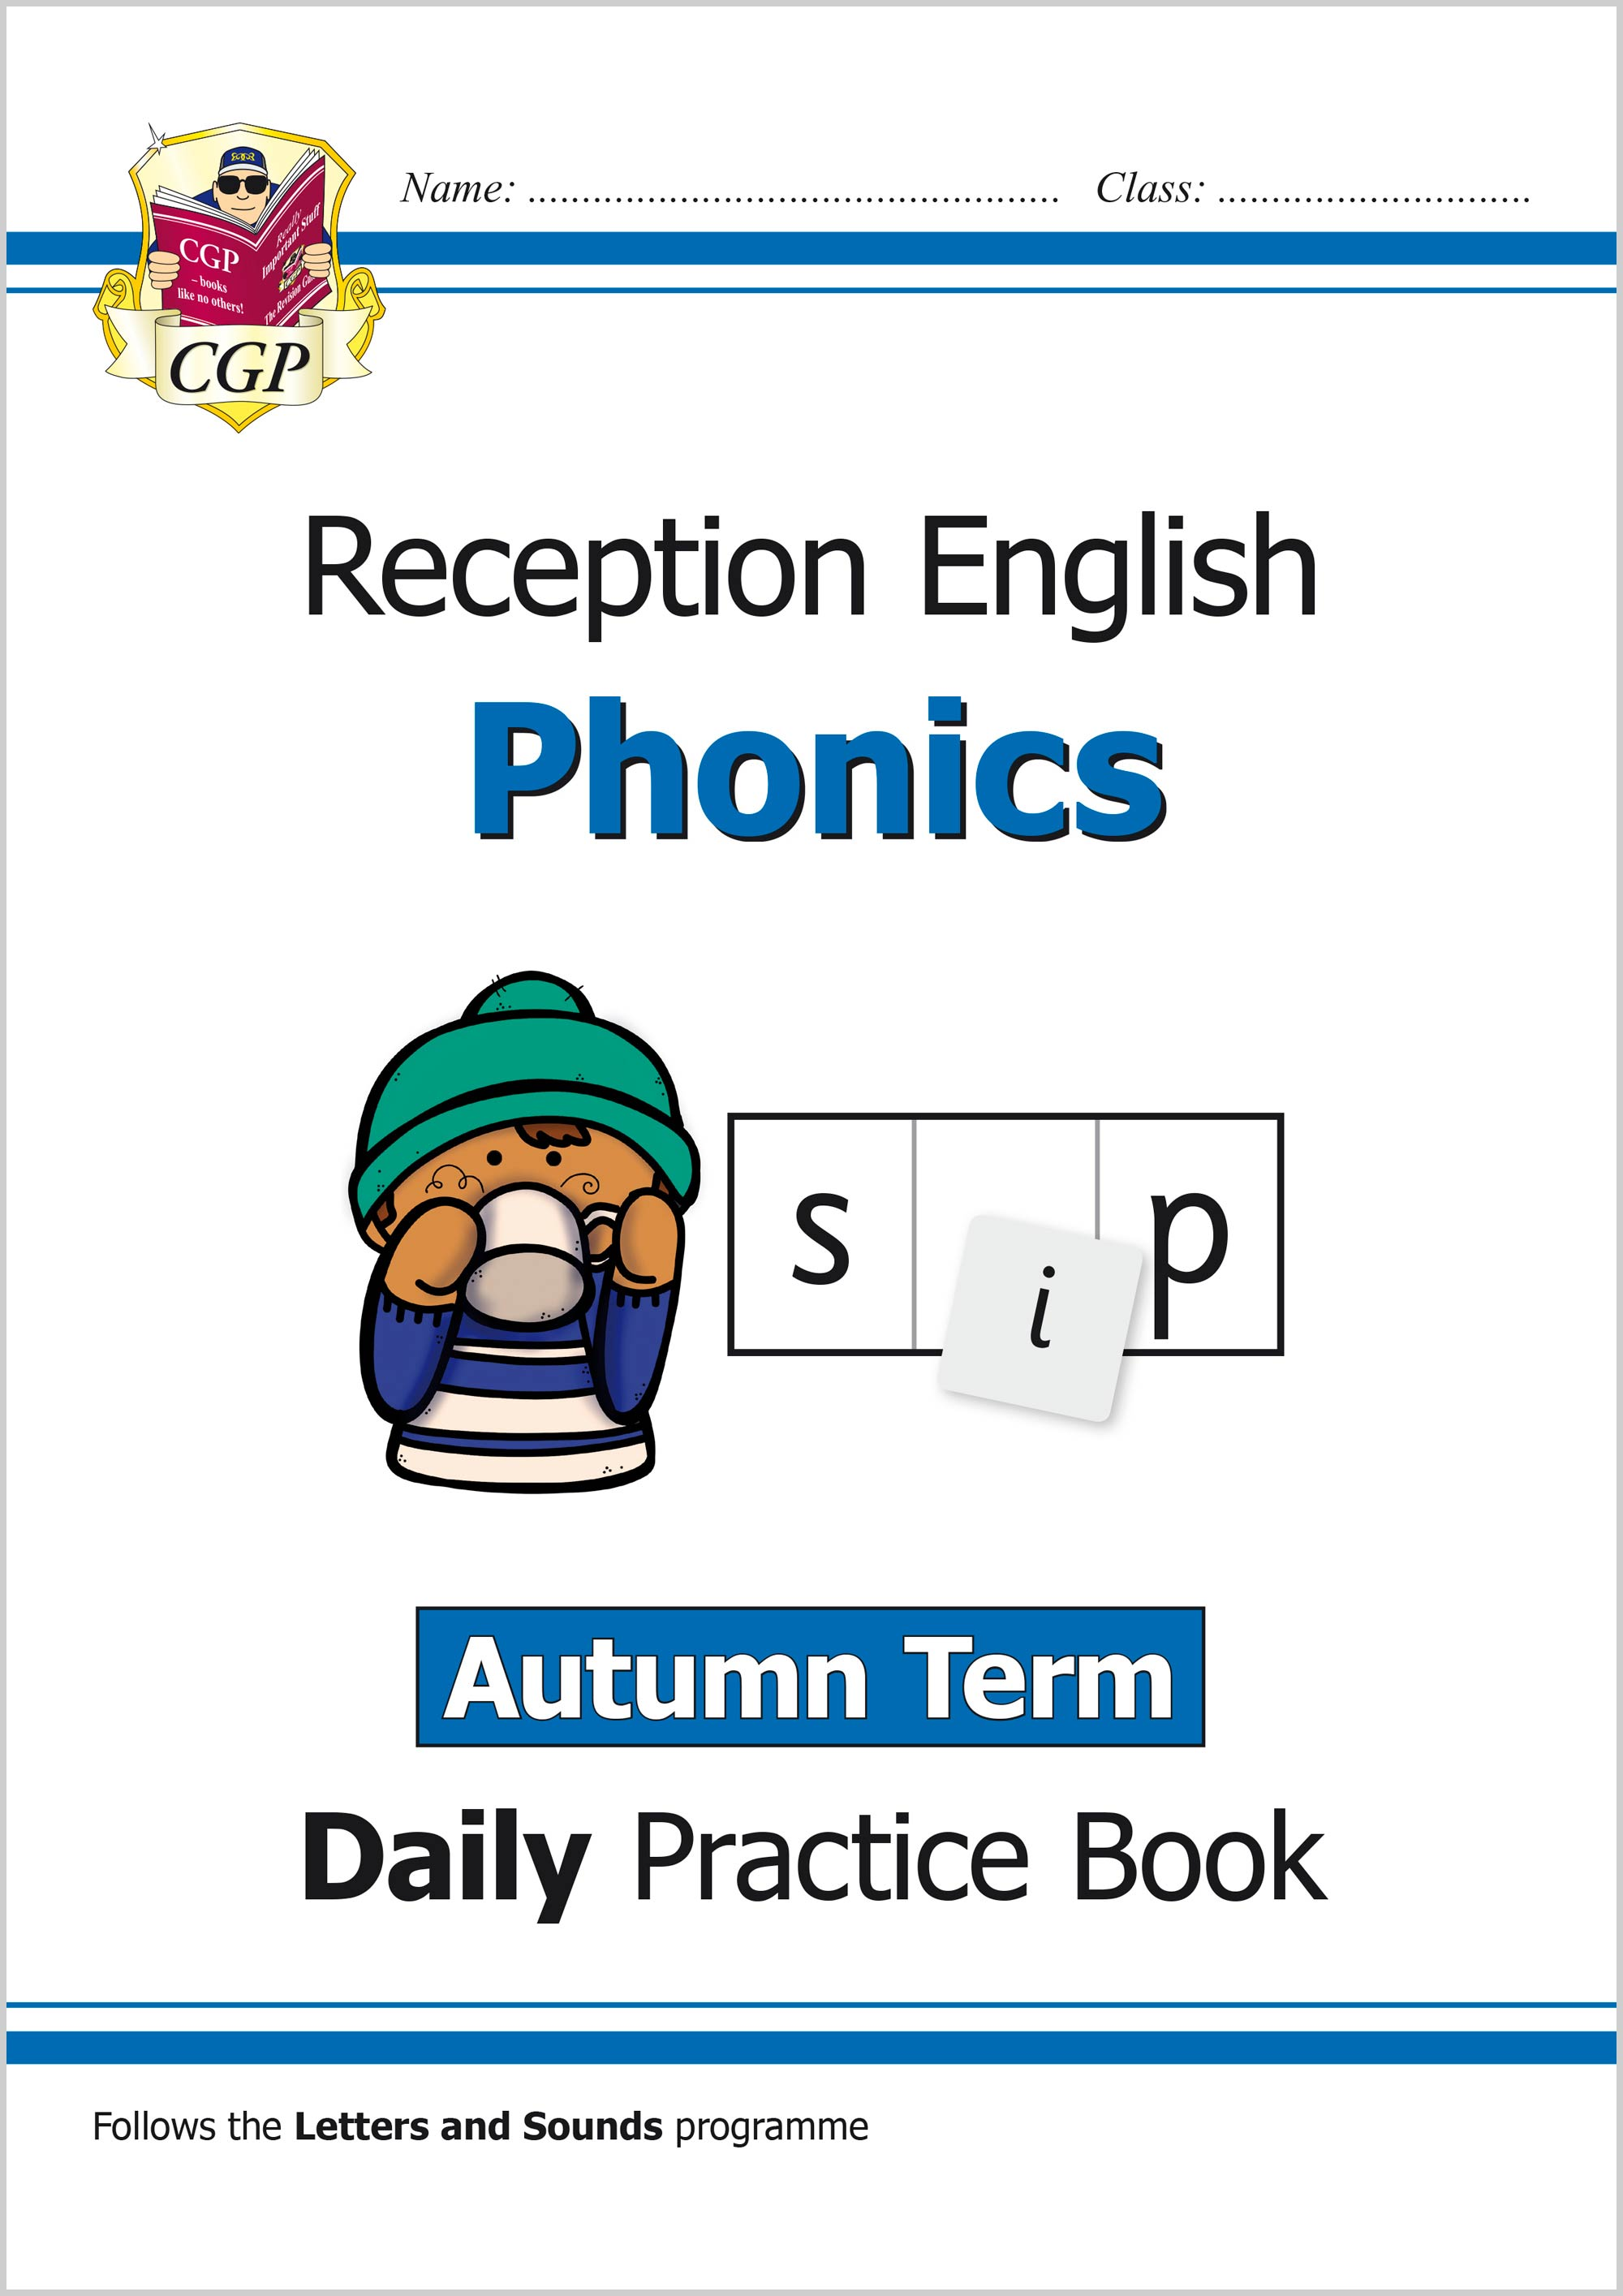 EROWAU11 - New Phonics Daily Practice Book: Reception - Autumn Term